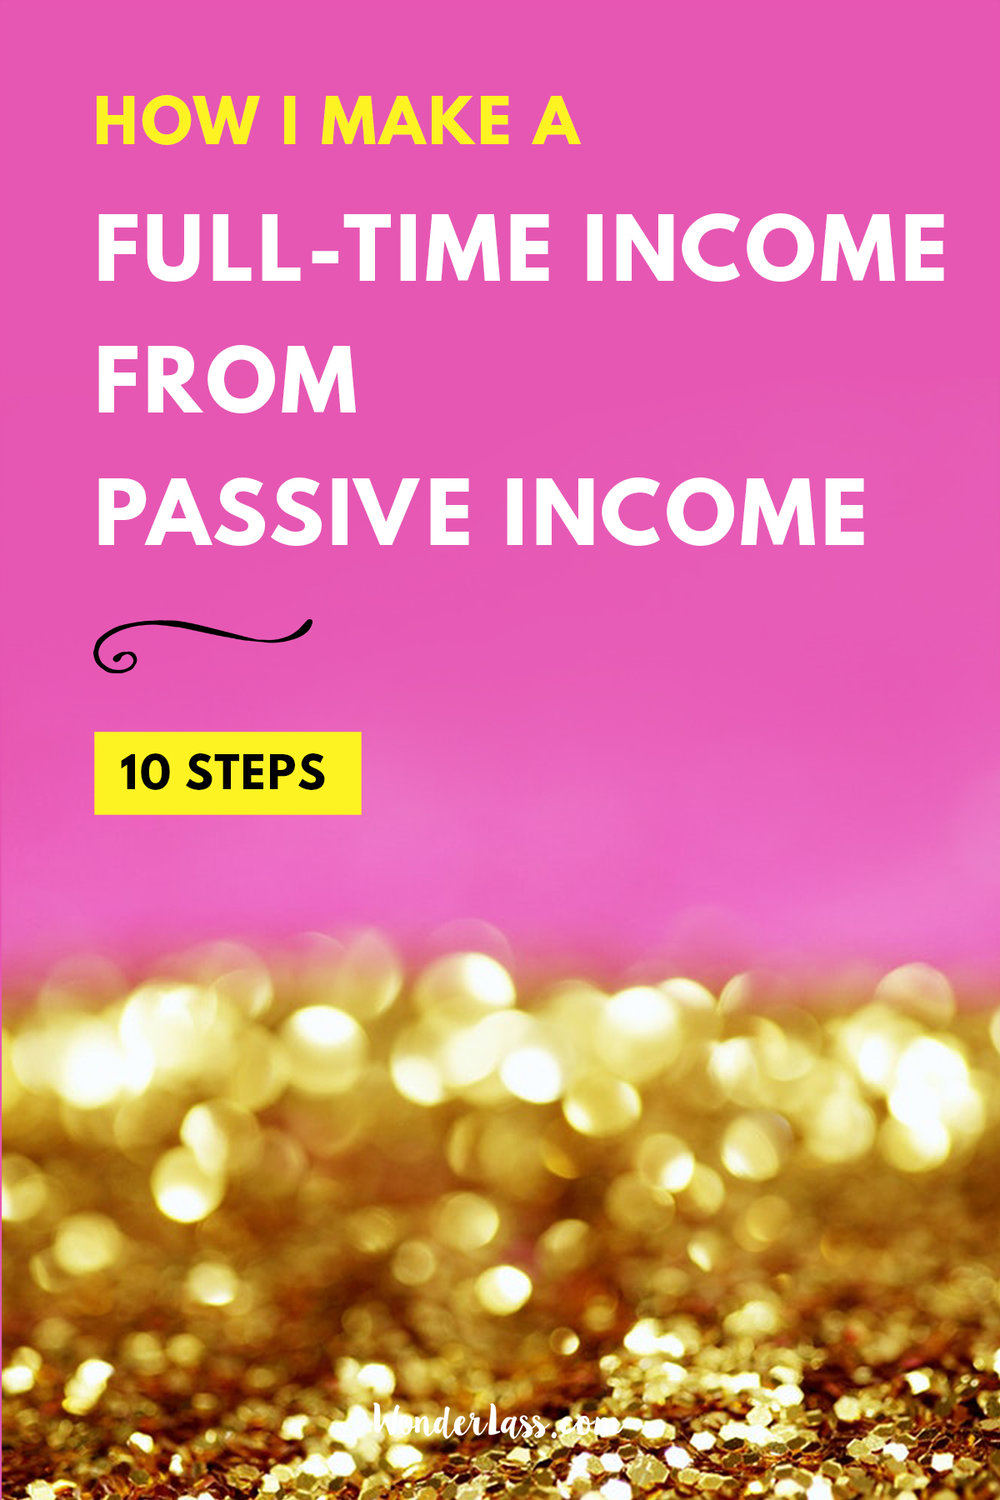 How to Make a Full-Time Income From Passive Income in 10 Steps | Wonderlass